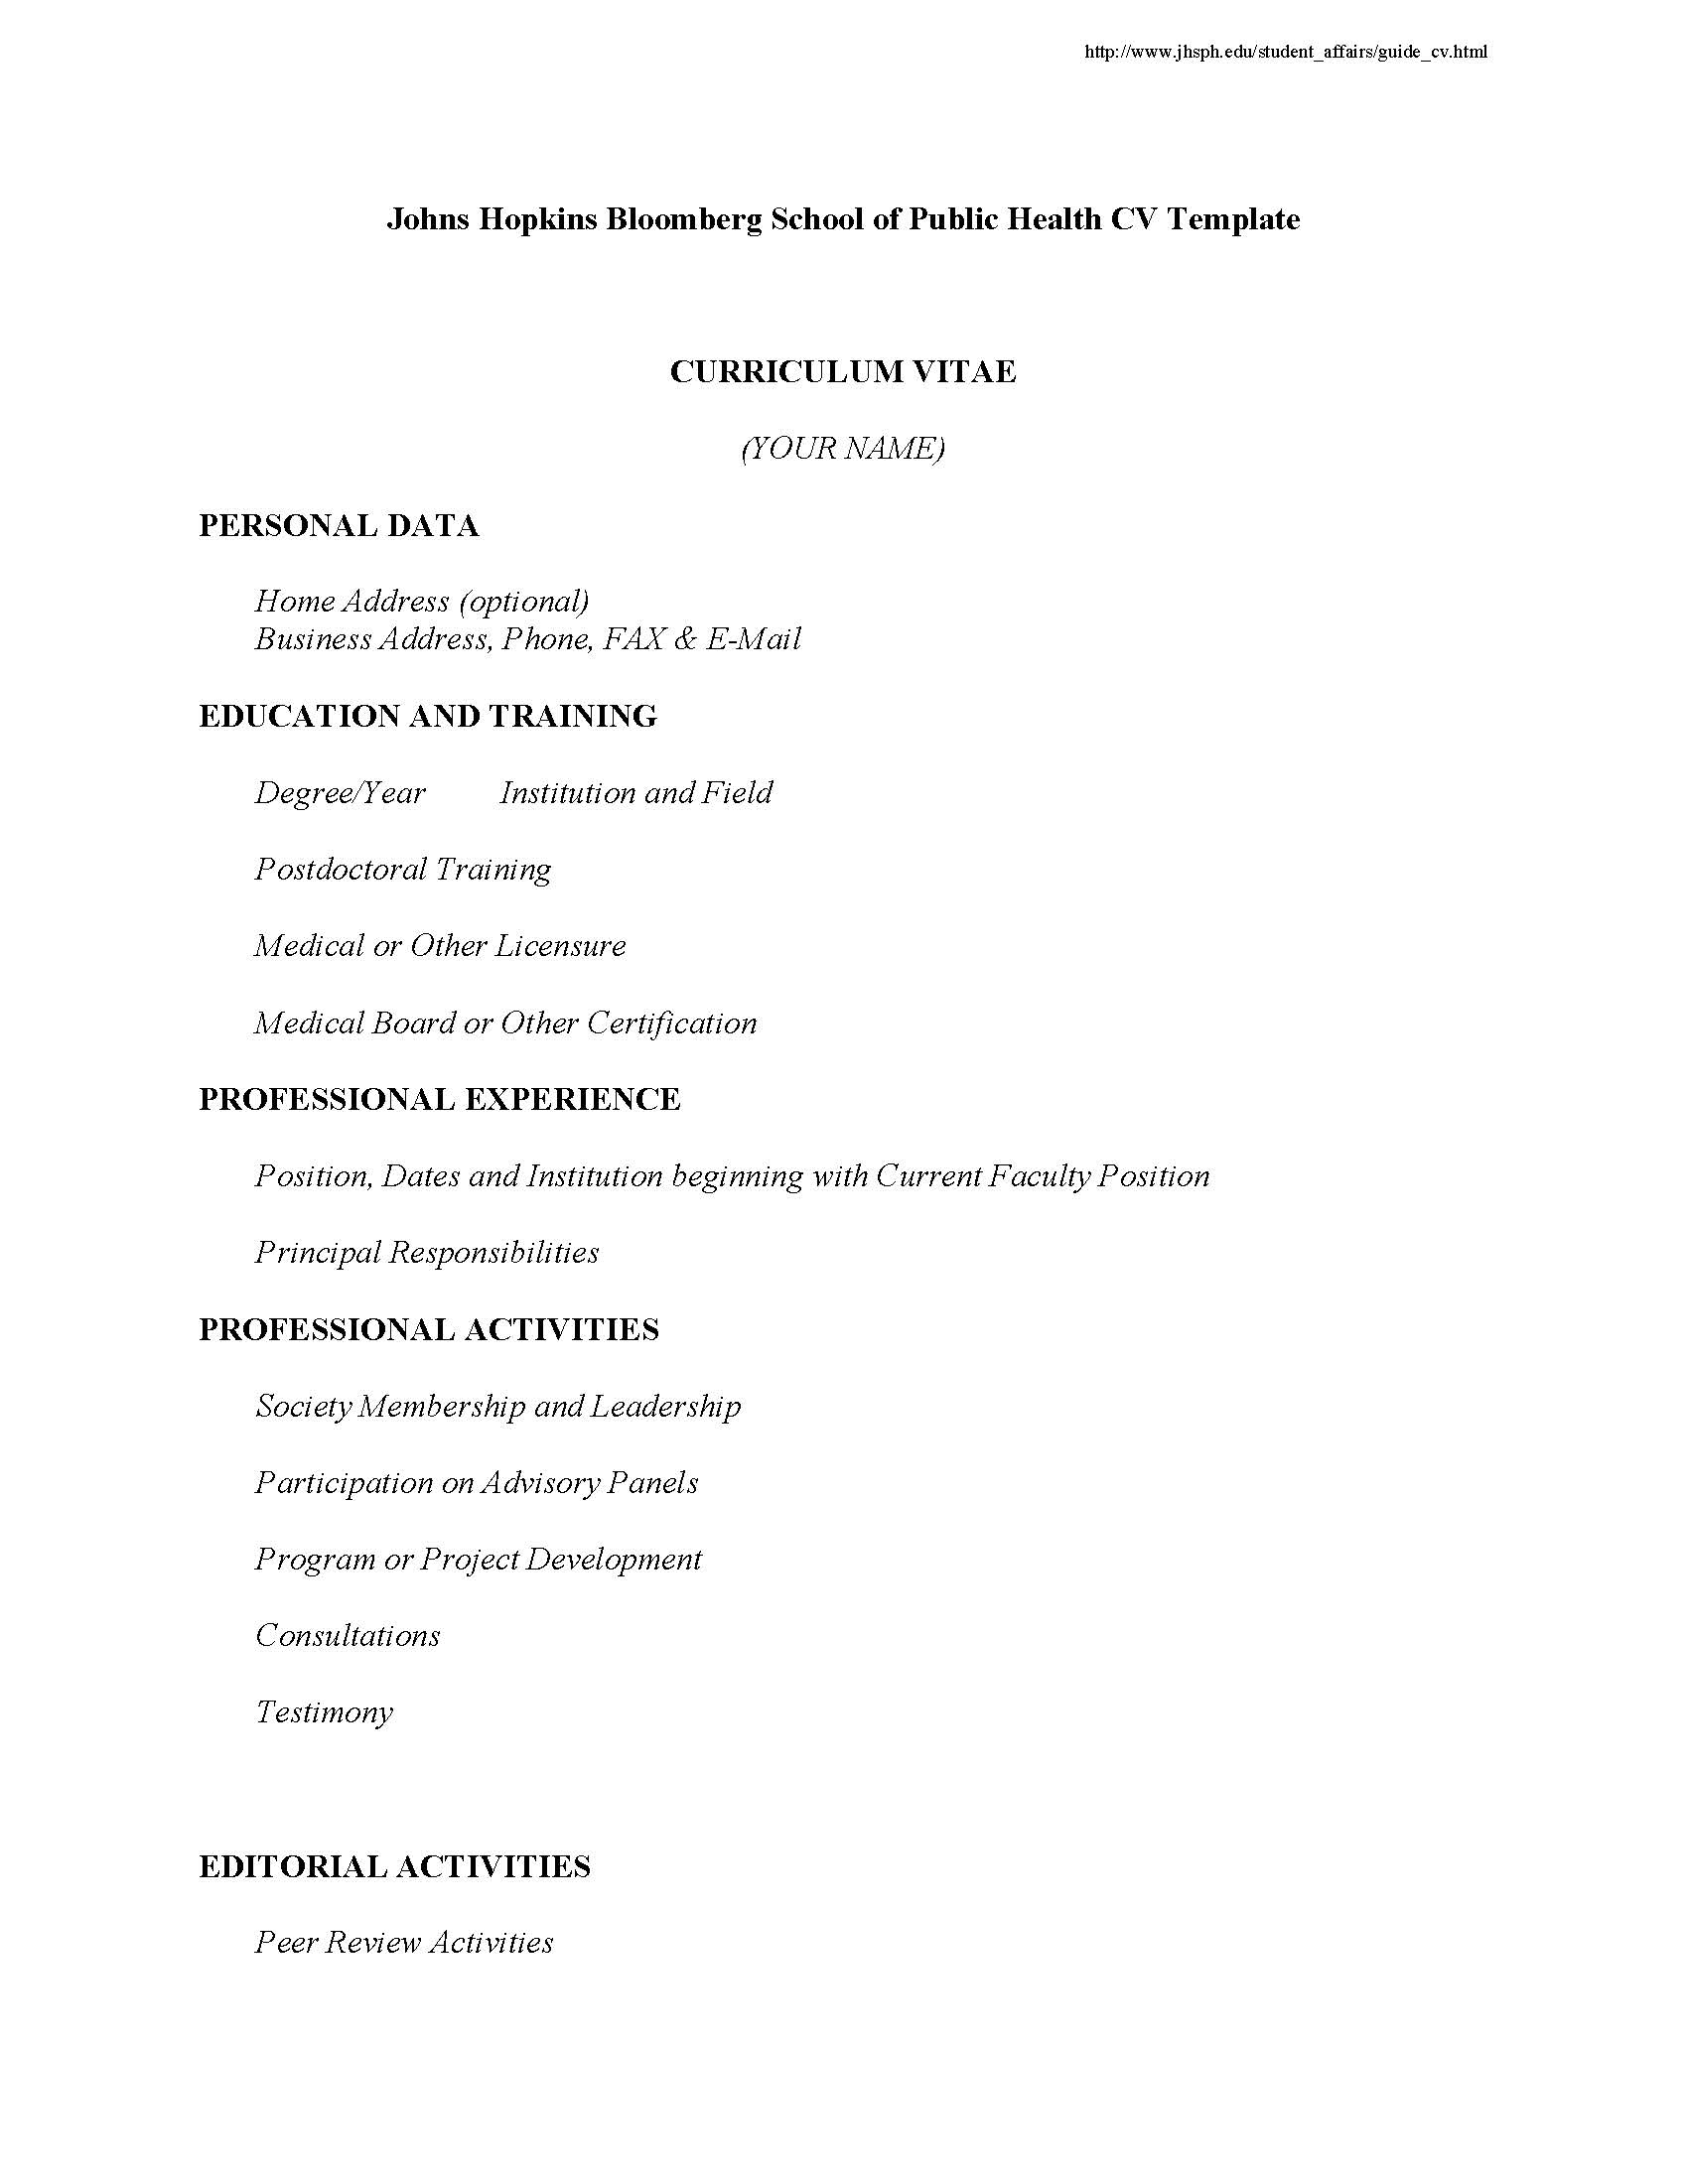 resumes and cvs career resources for students career jhsph cv template